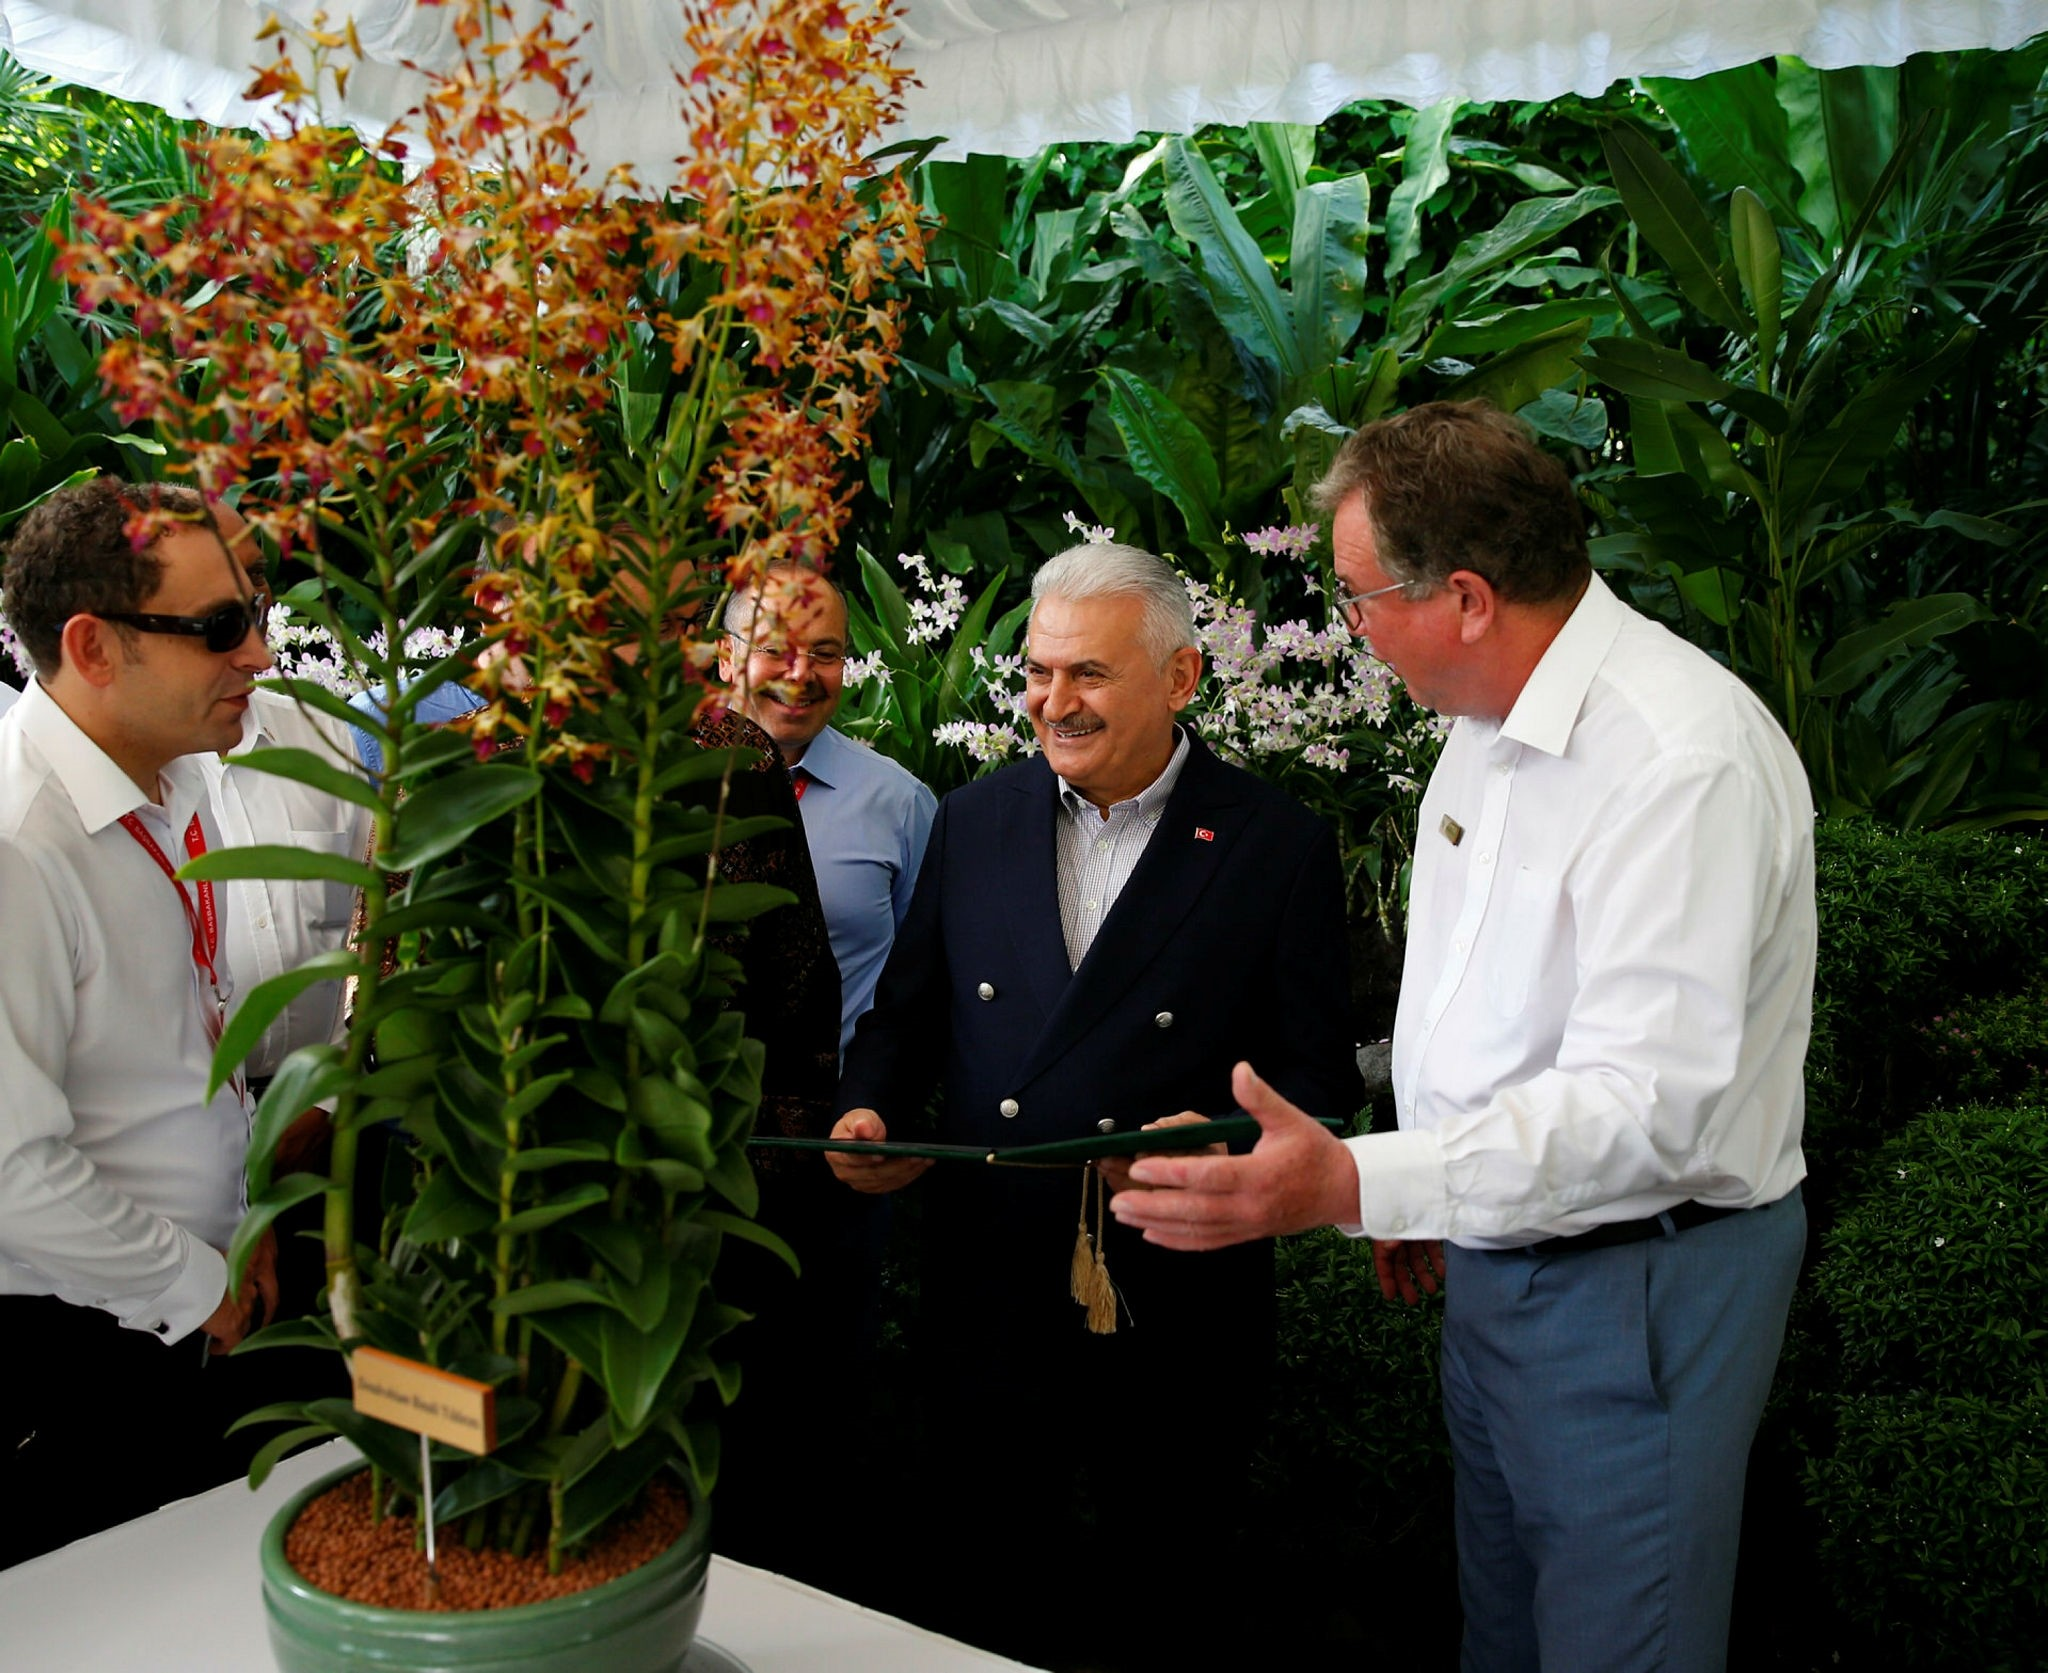 PM Yu0131ldu0131ru0131m (2-R) is briefed by director of Singaporeu2019s National Orchid Garden, Dr. Kwik Tan (R) (AA Photo)